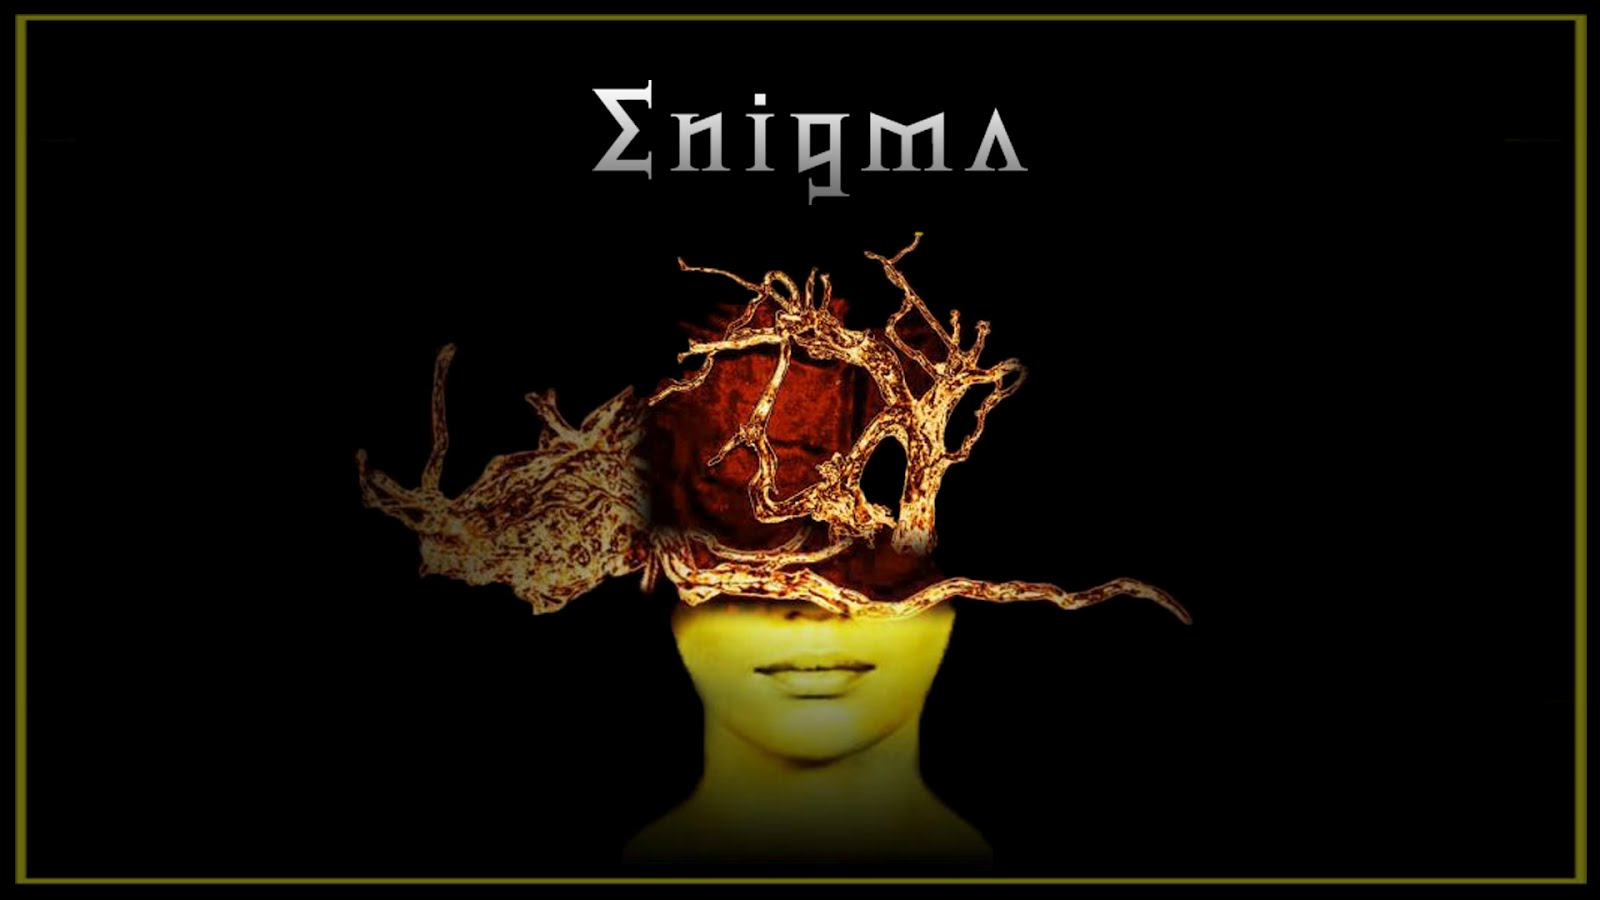 Enigma - MMX (The Social Song) [VocalChill, DownTempo, Esoteric, Enigmatic]